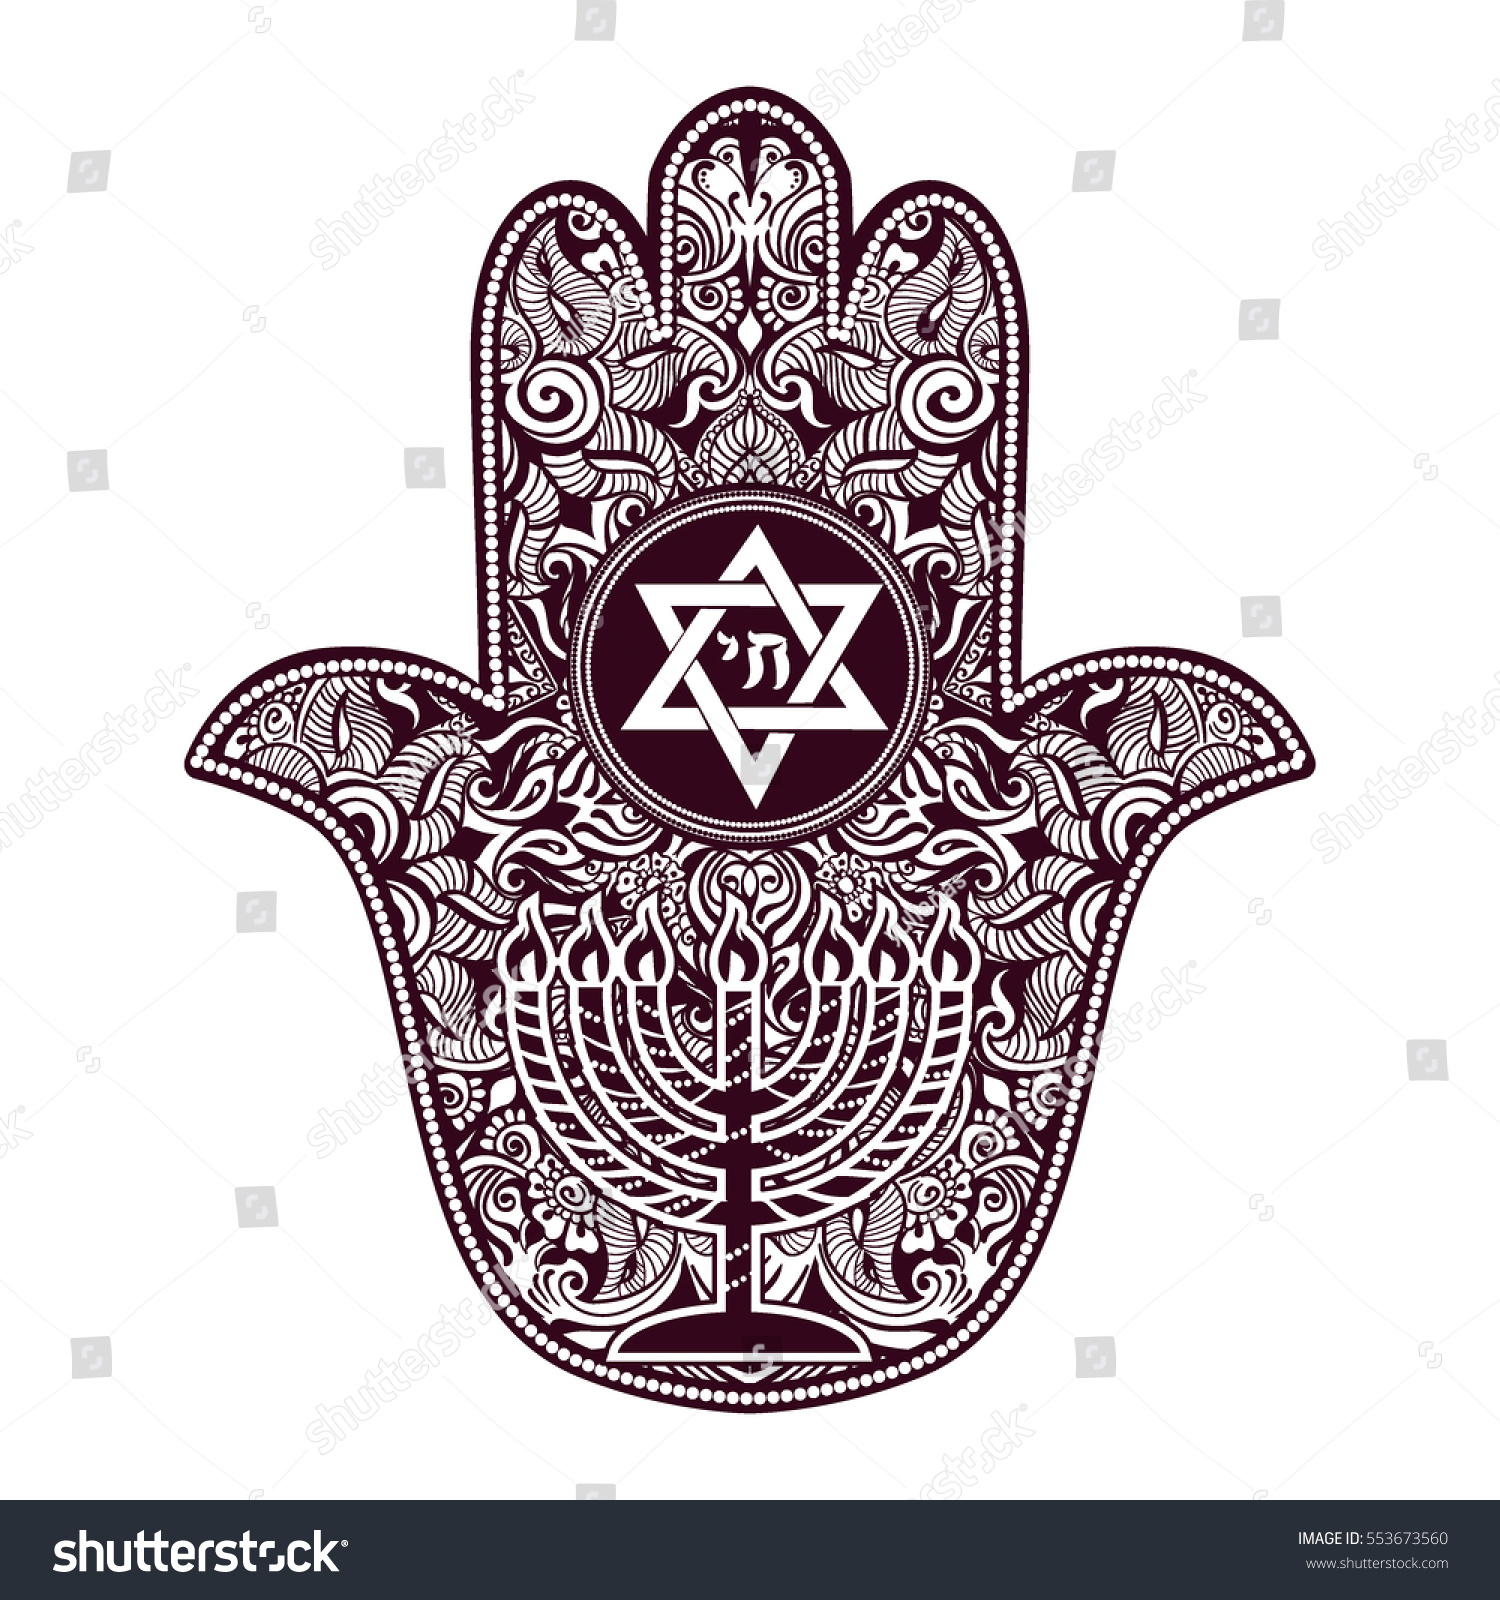 Jewish sacred symbols gallery symbol and sign ideas jewish sacred symbols gallery symbol and sign ideas jewish sacred amulet religious symbols menorah stock vector biocorpaavc